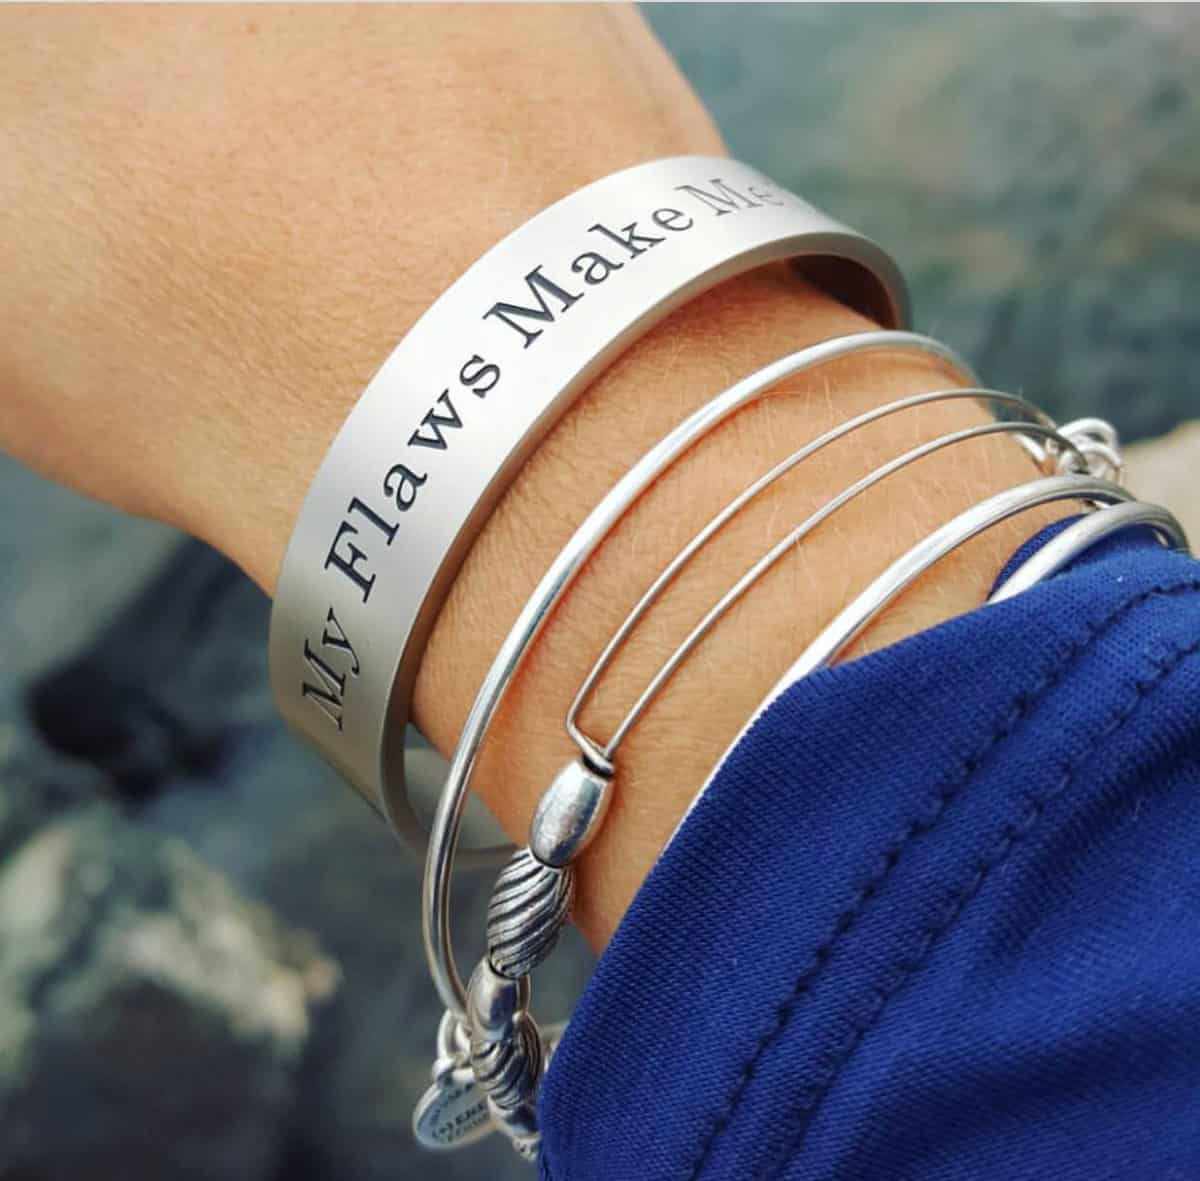 My Flaws Make Me Who I Am cuff bracelet